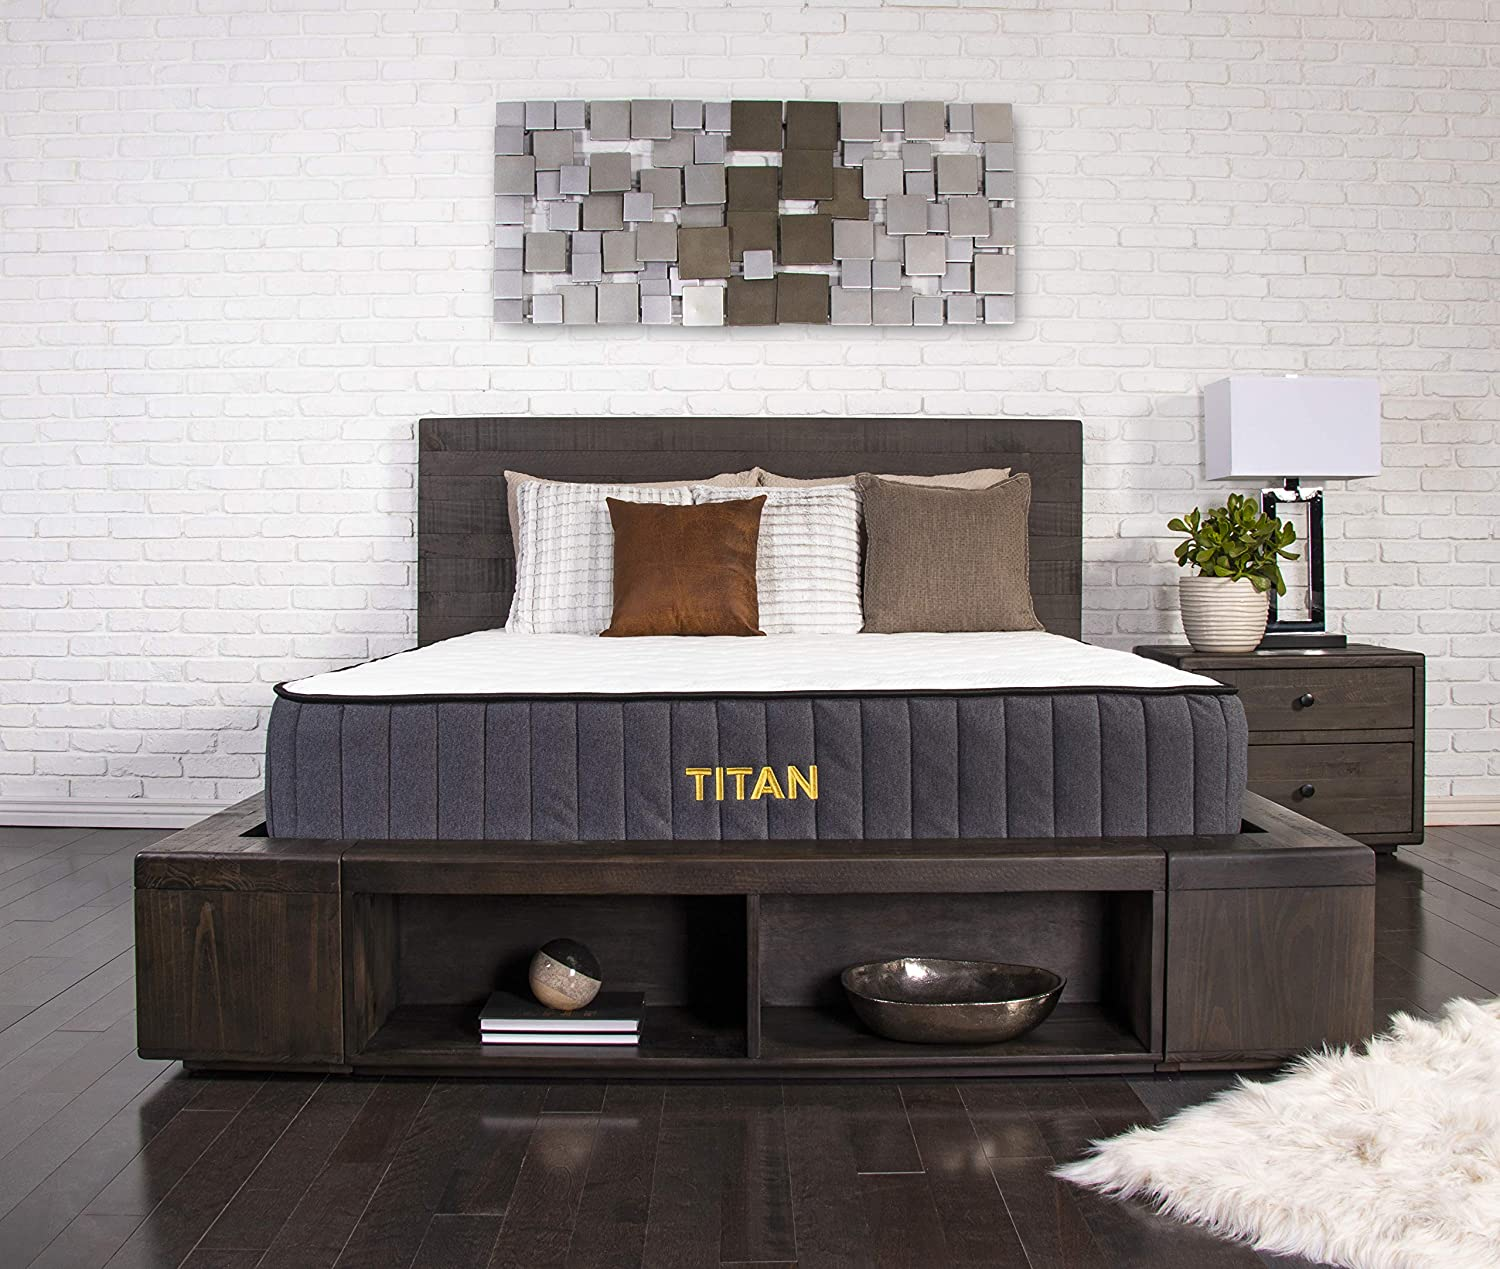 Brooklyn Bedding Titan 11-Inch TitanFlex Hybrid Mattress with TitanCaliber Coils, King